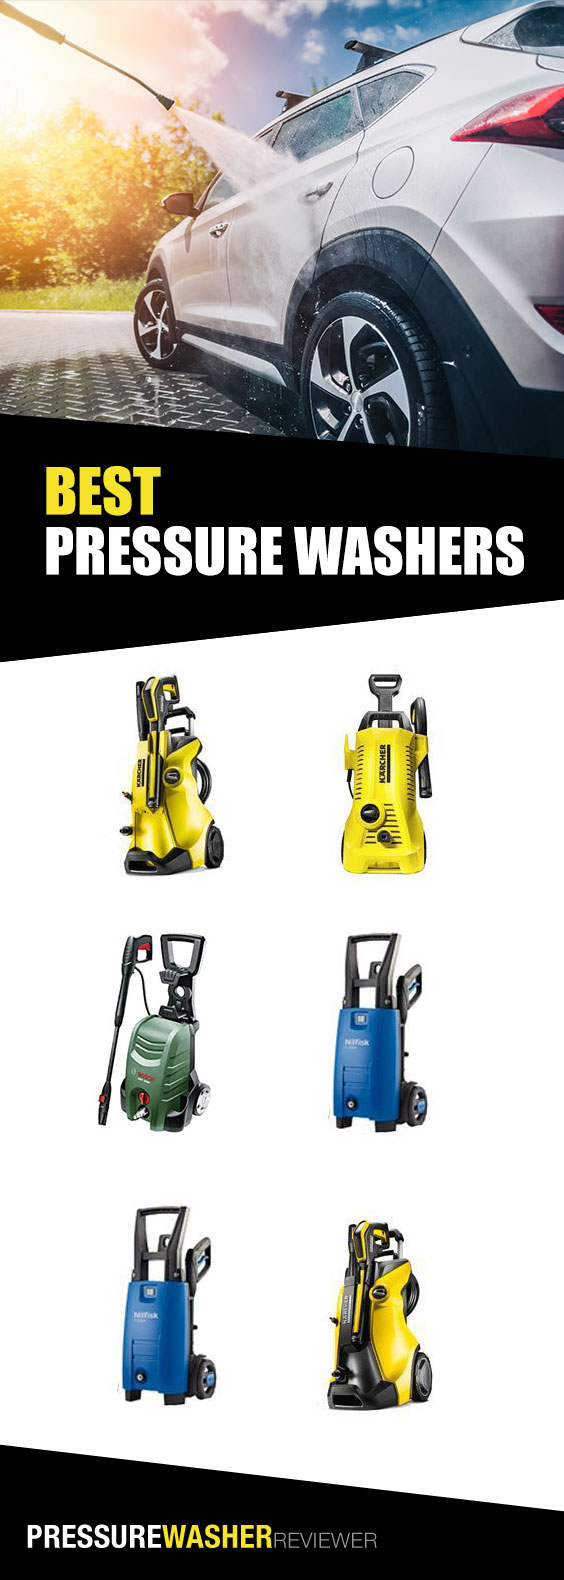 Check out the Best Pressure Washers Perfect for your Car and at Home